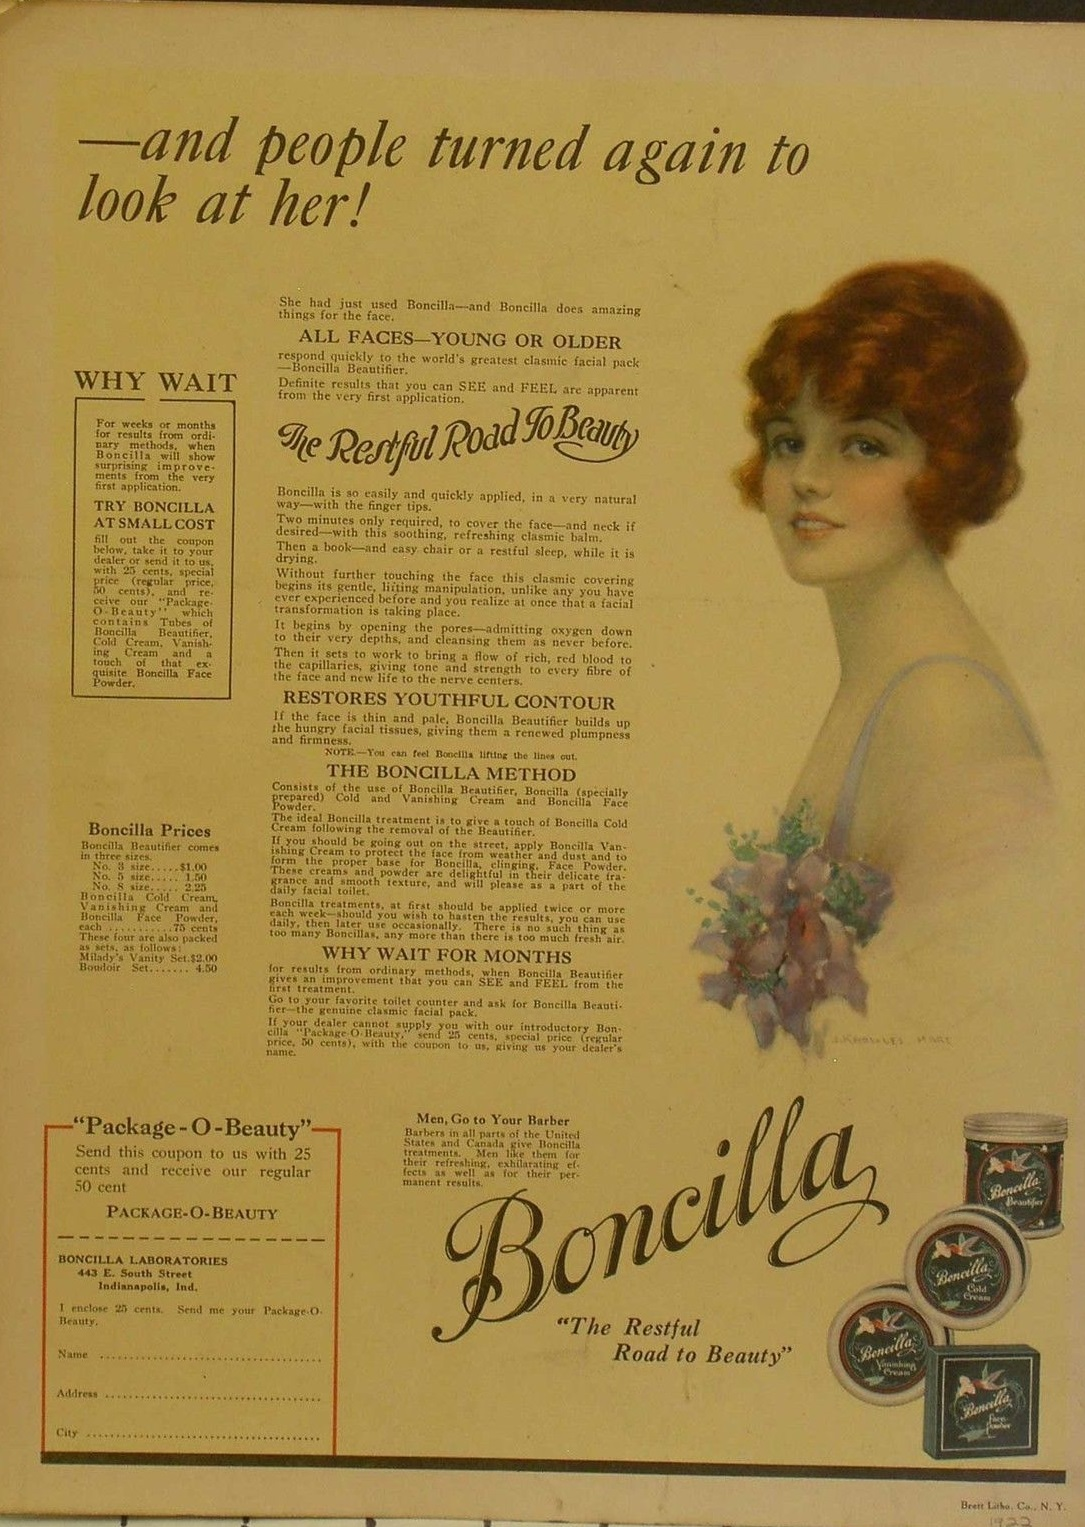 Sunday Adverts: Boncilla Cosmetics